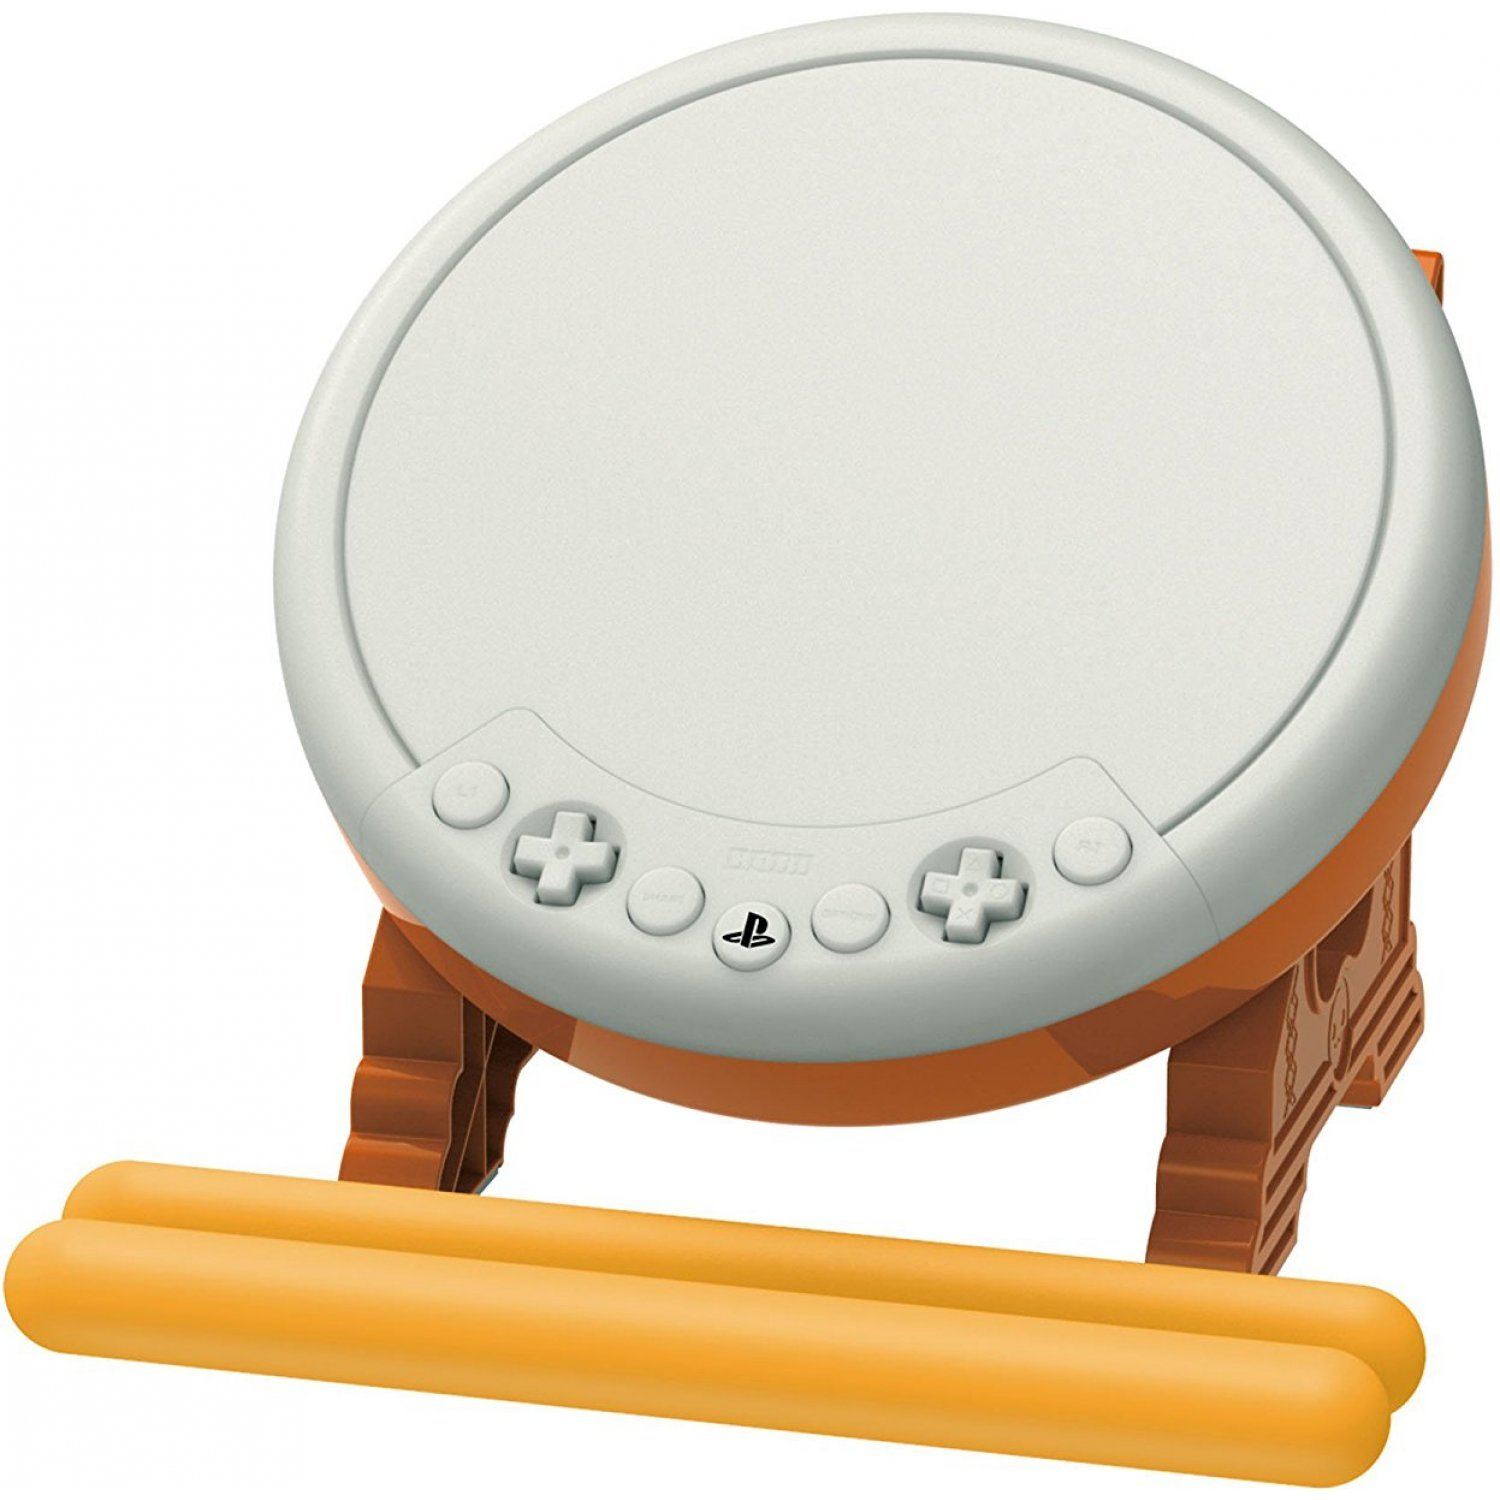 taiko-drum-controller-for-playstation-4-